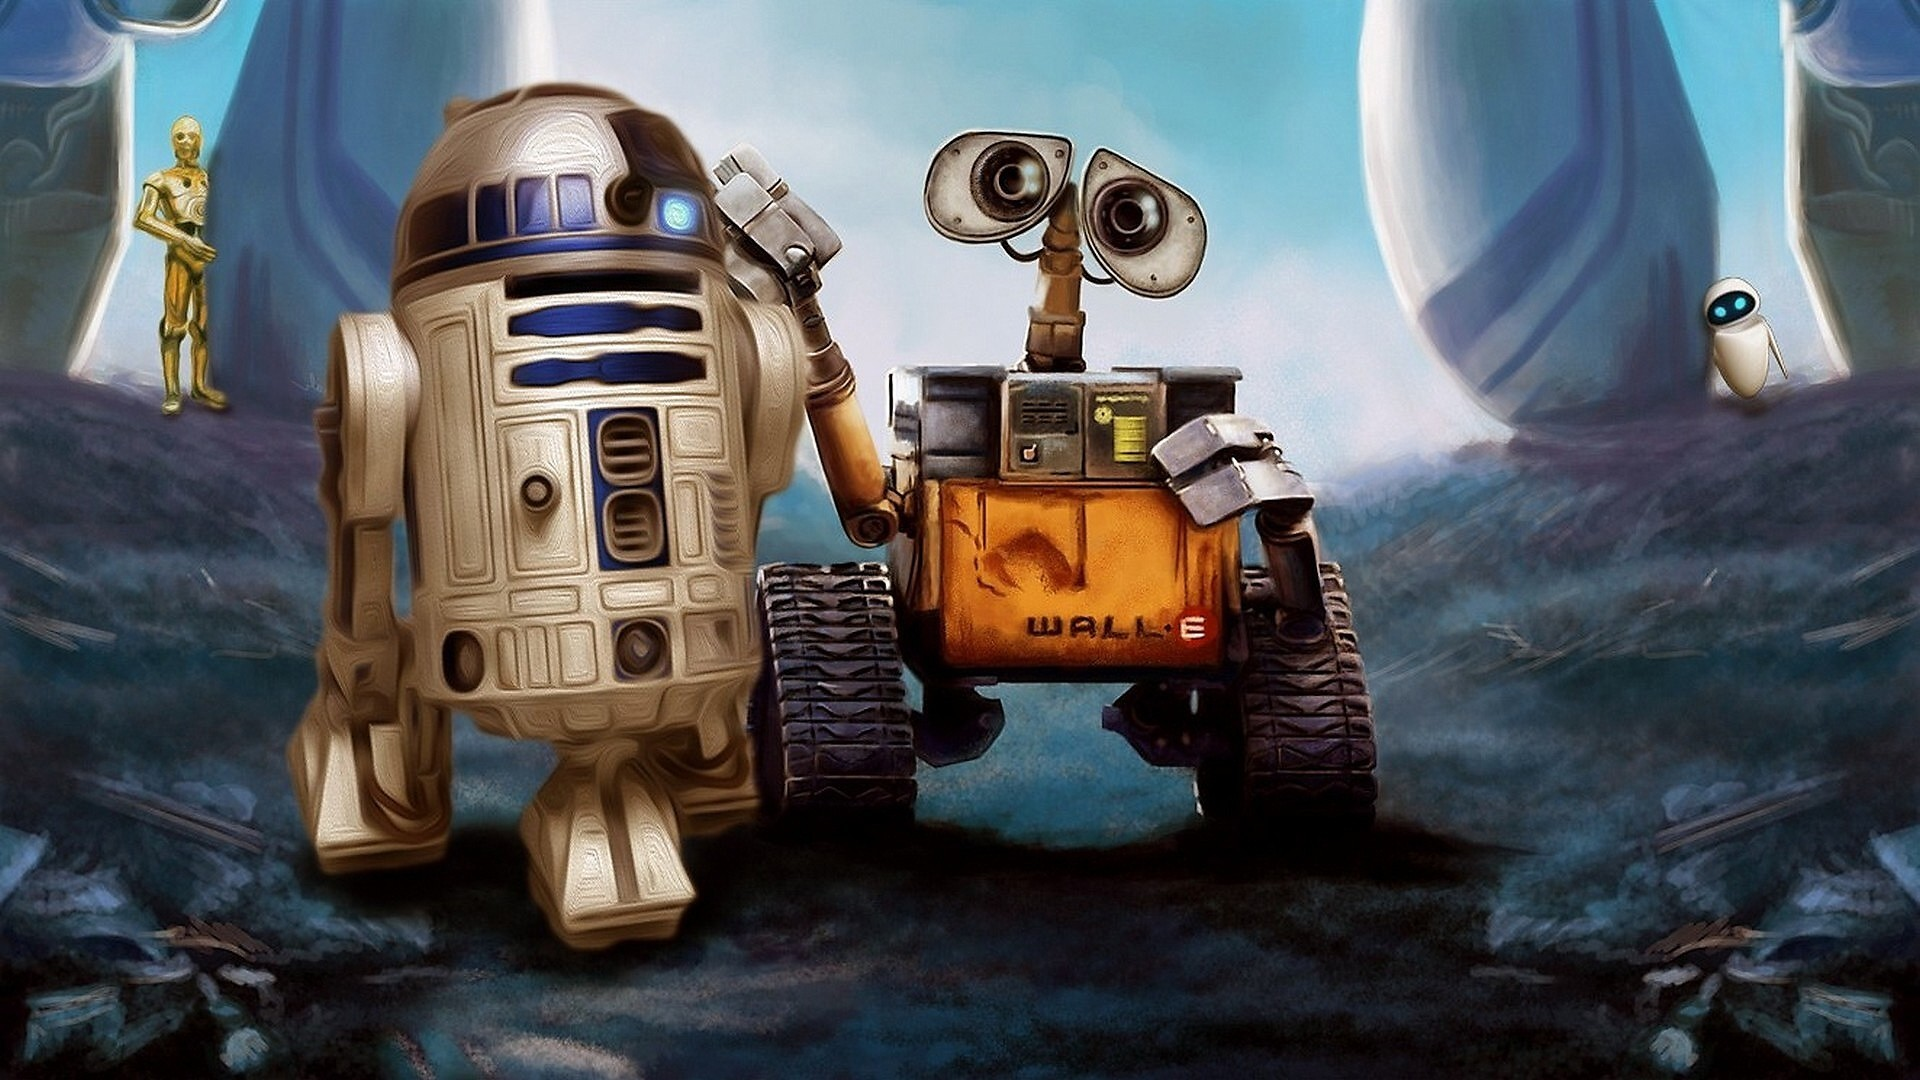 WALL·E, Pixar Animation Studios, Star Wars, Robot, Movies, R2 D2, Crossover Wallpapers  HD / Desktop and Mobile Backgrounds